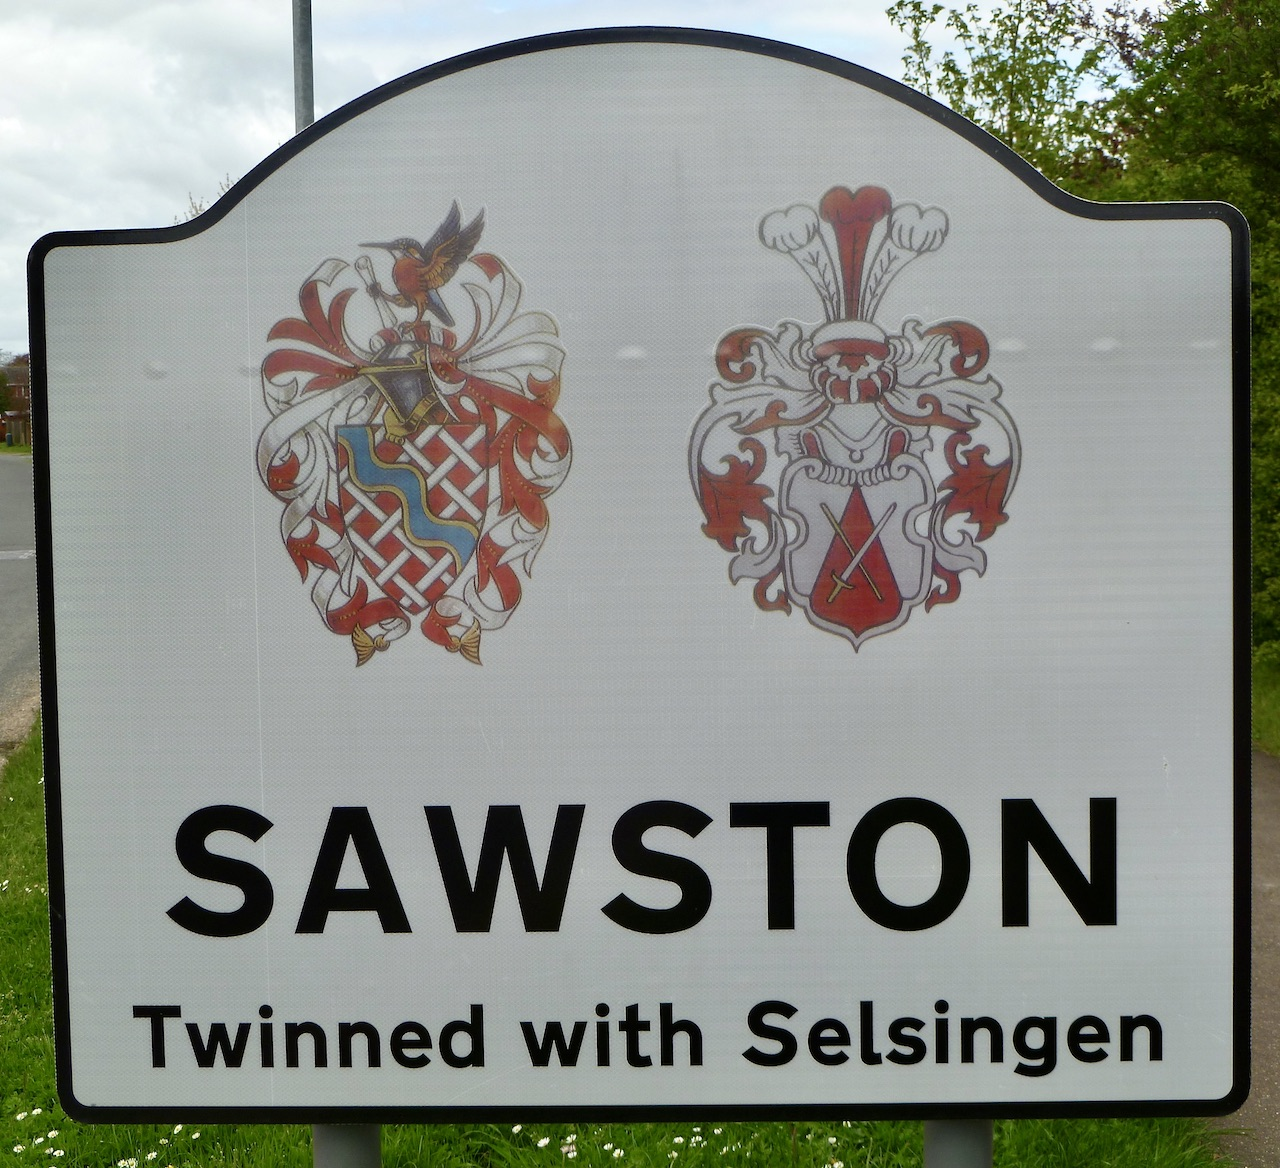 Sawston village sign